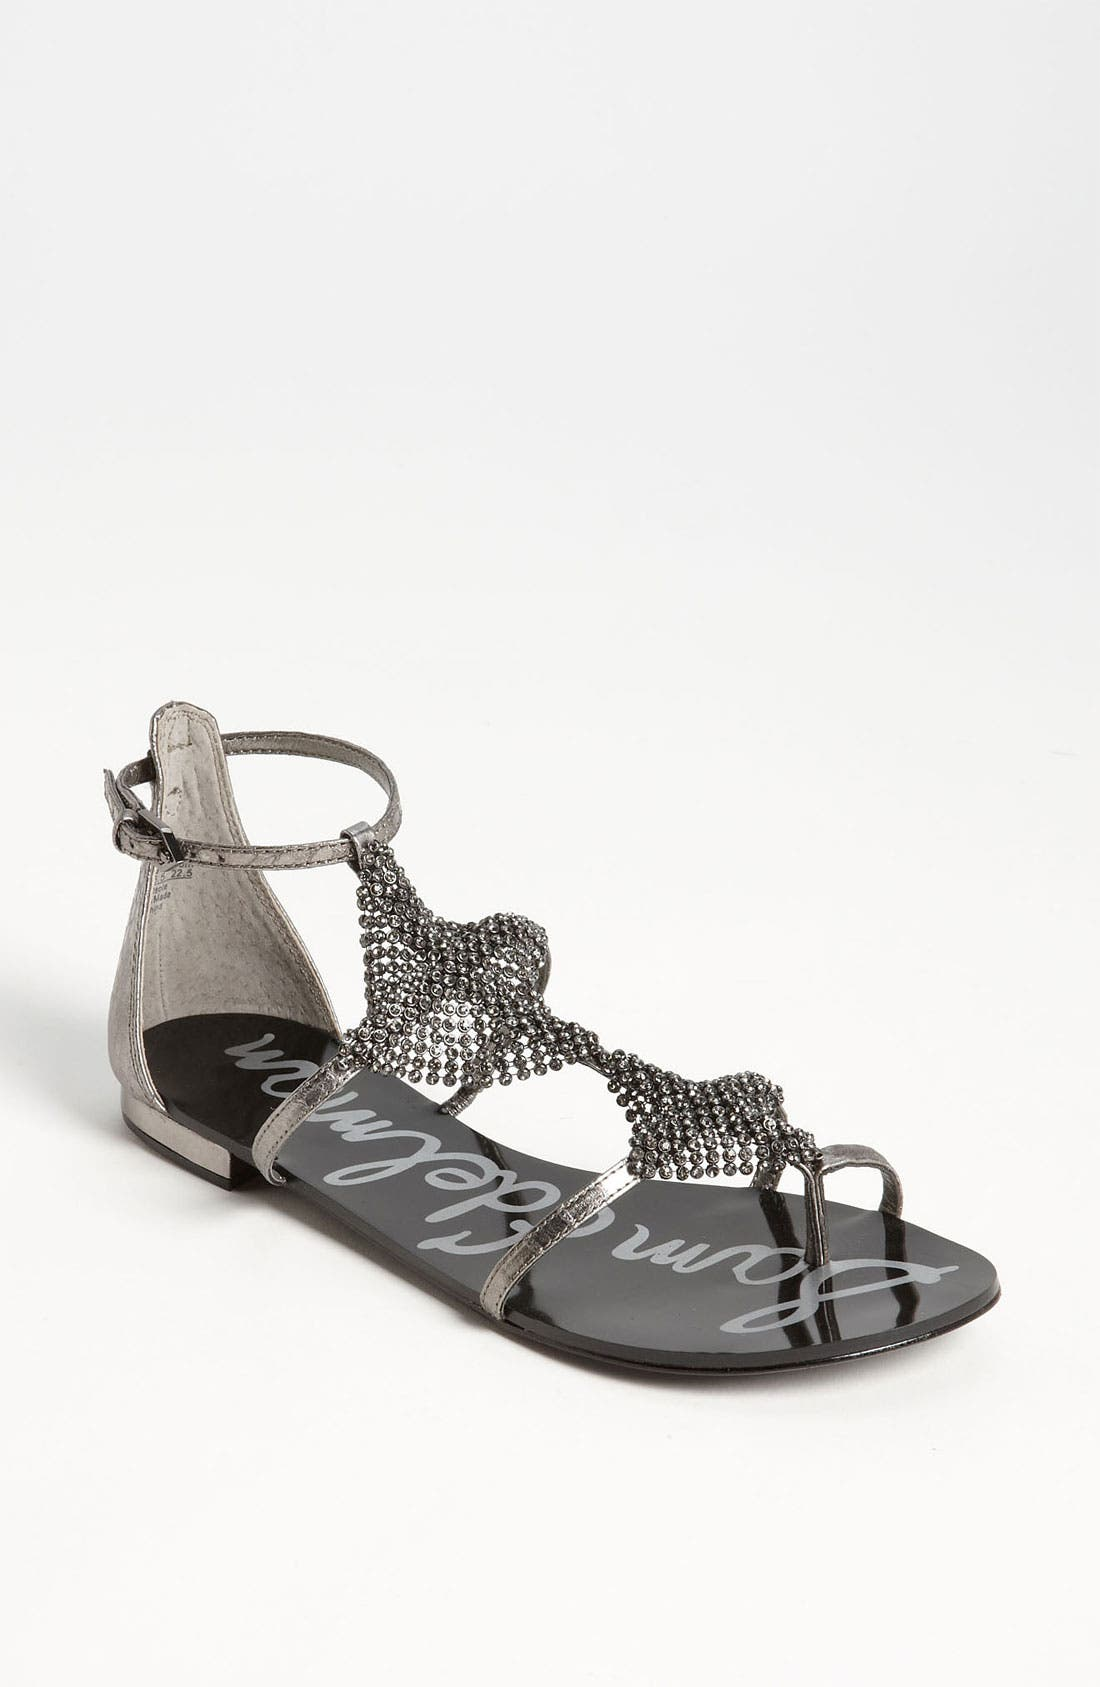 Alternate Image 1 Selected - Sam Edelman 'Tyra' Sandal